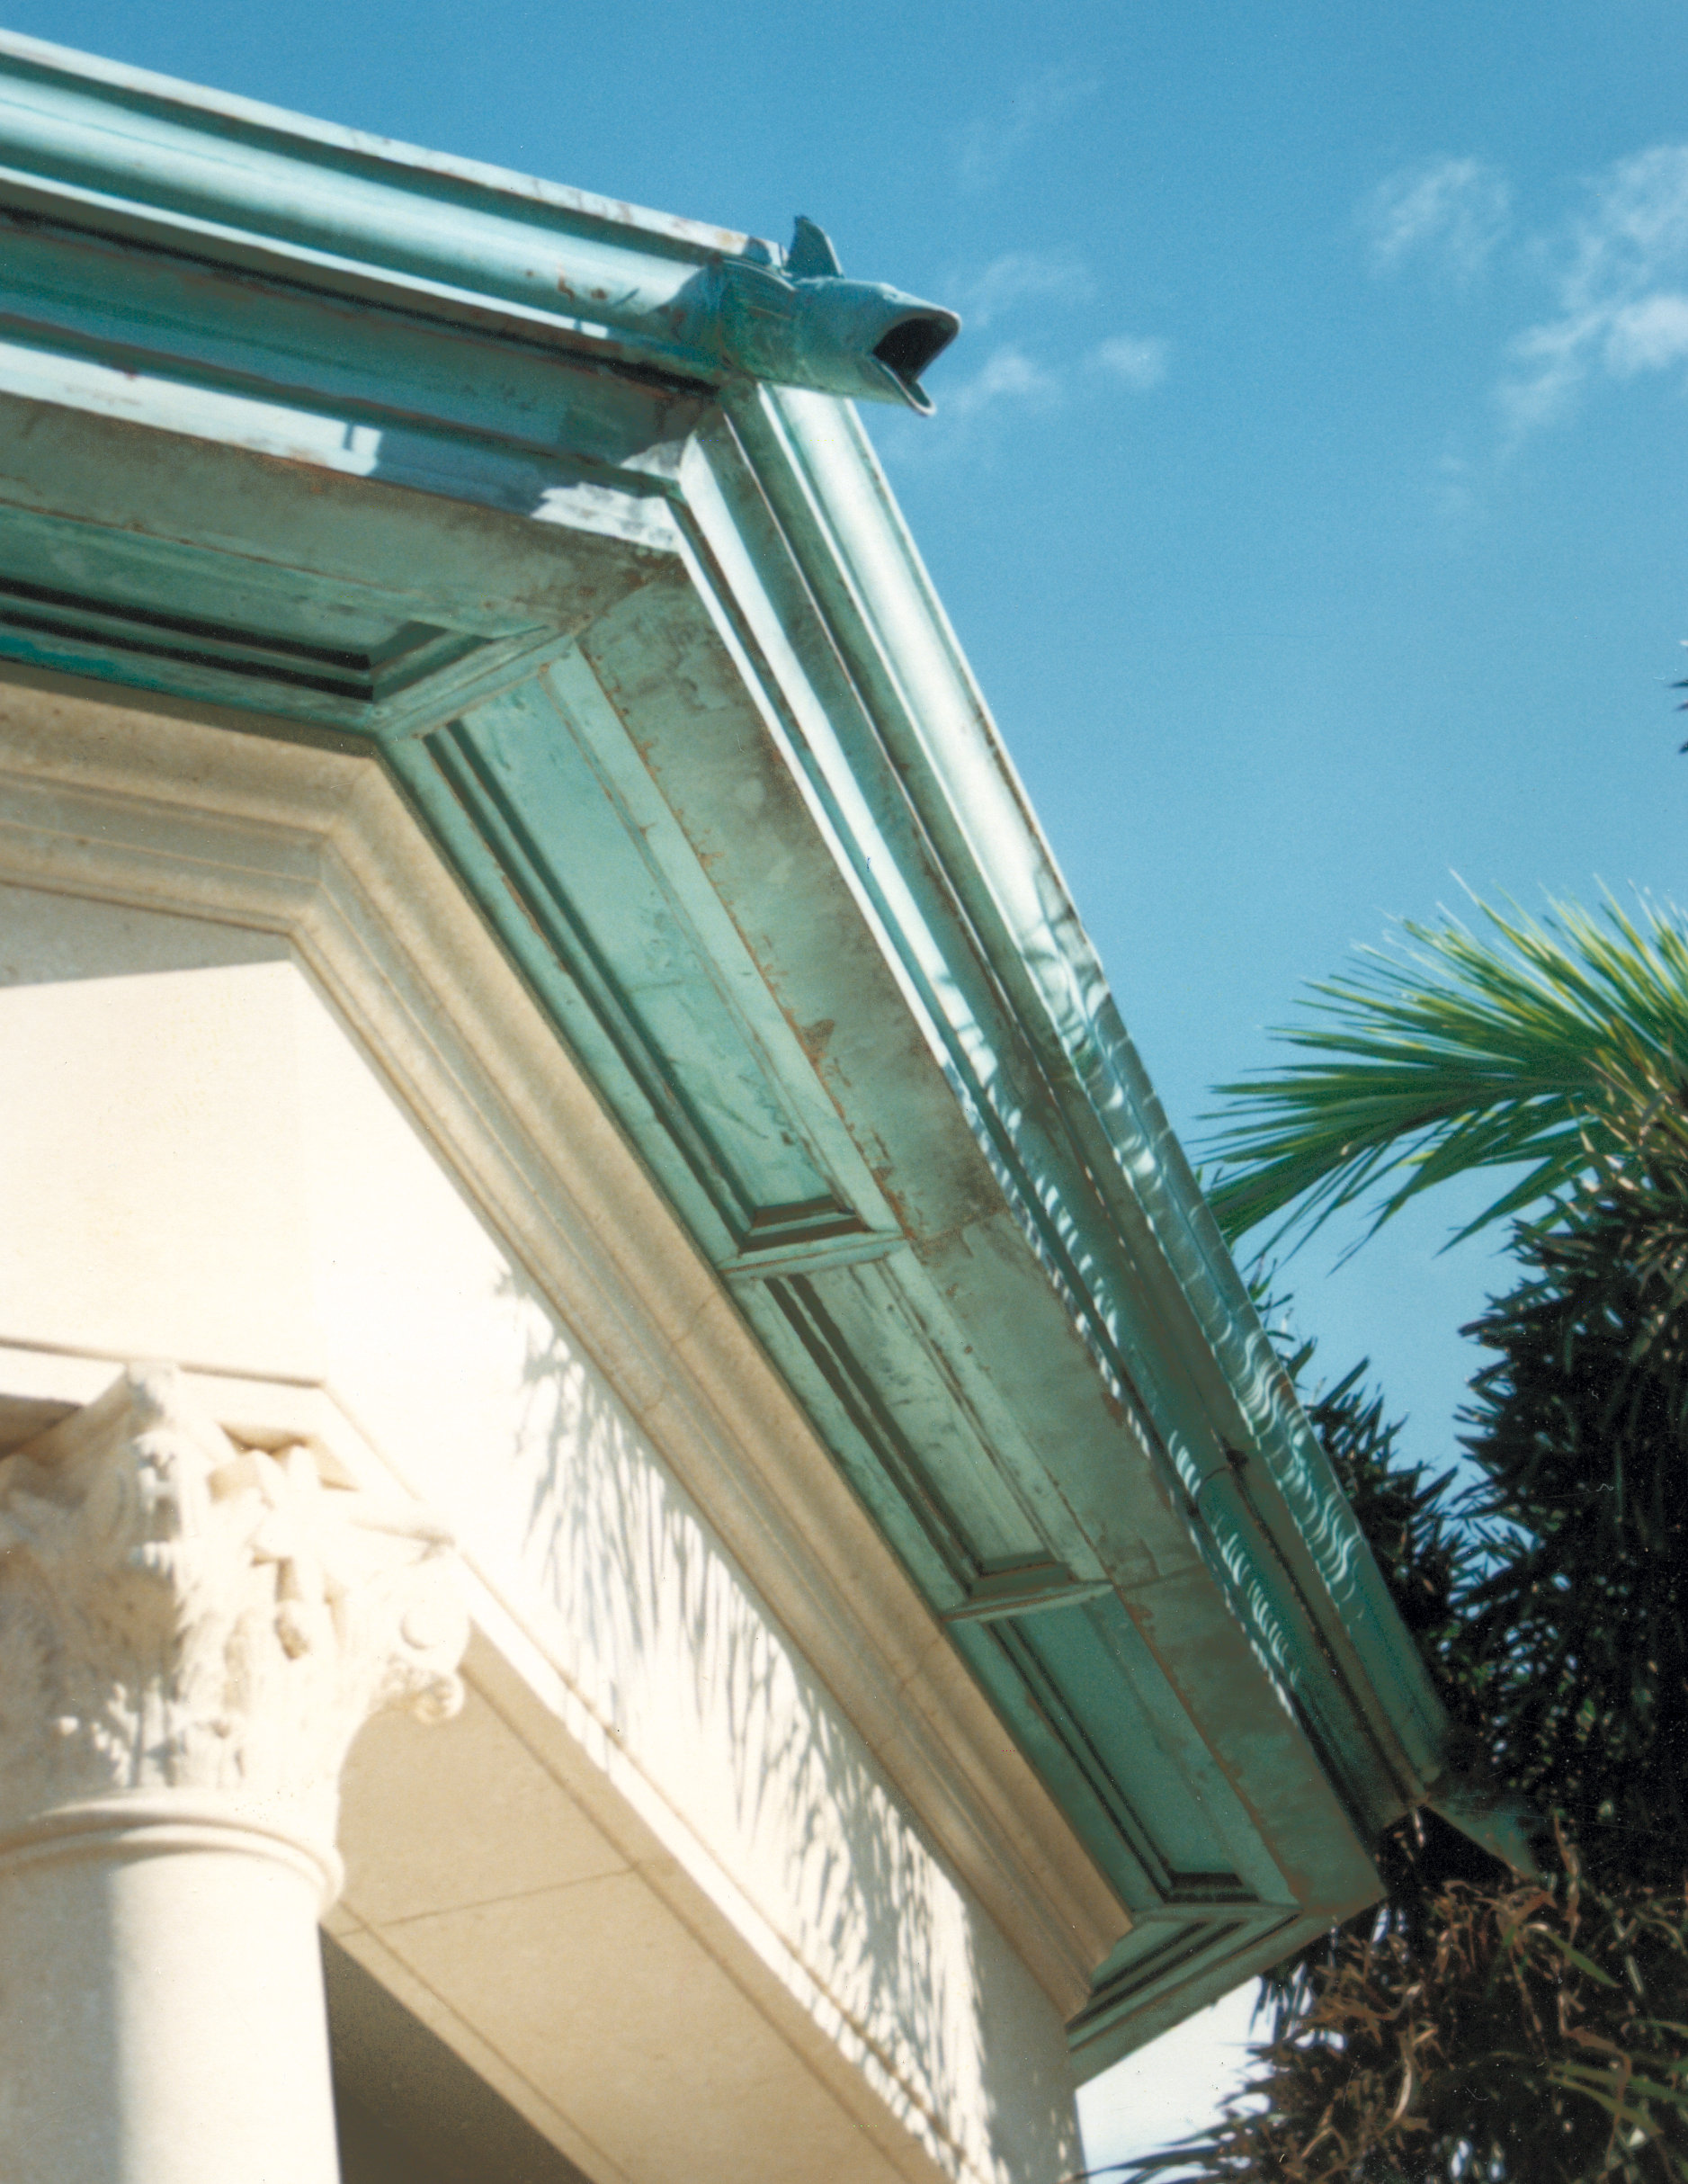 teal and white cornice